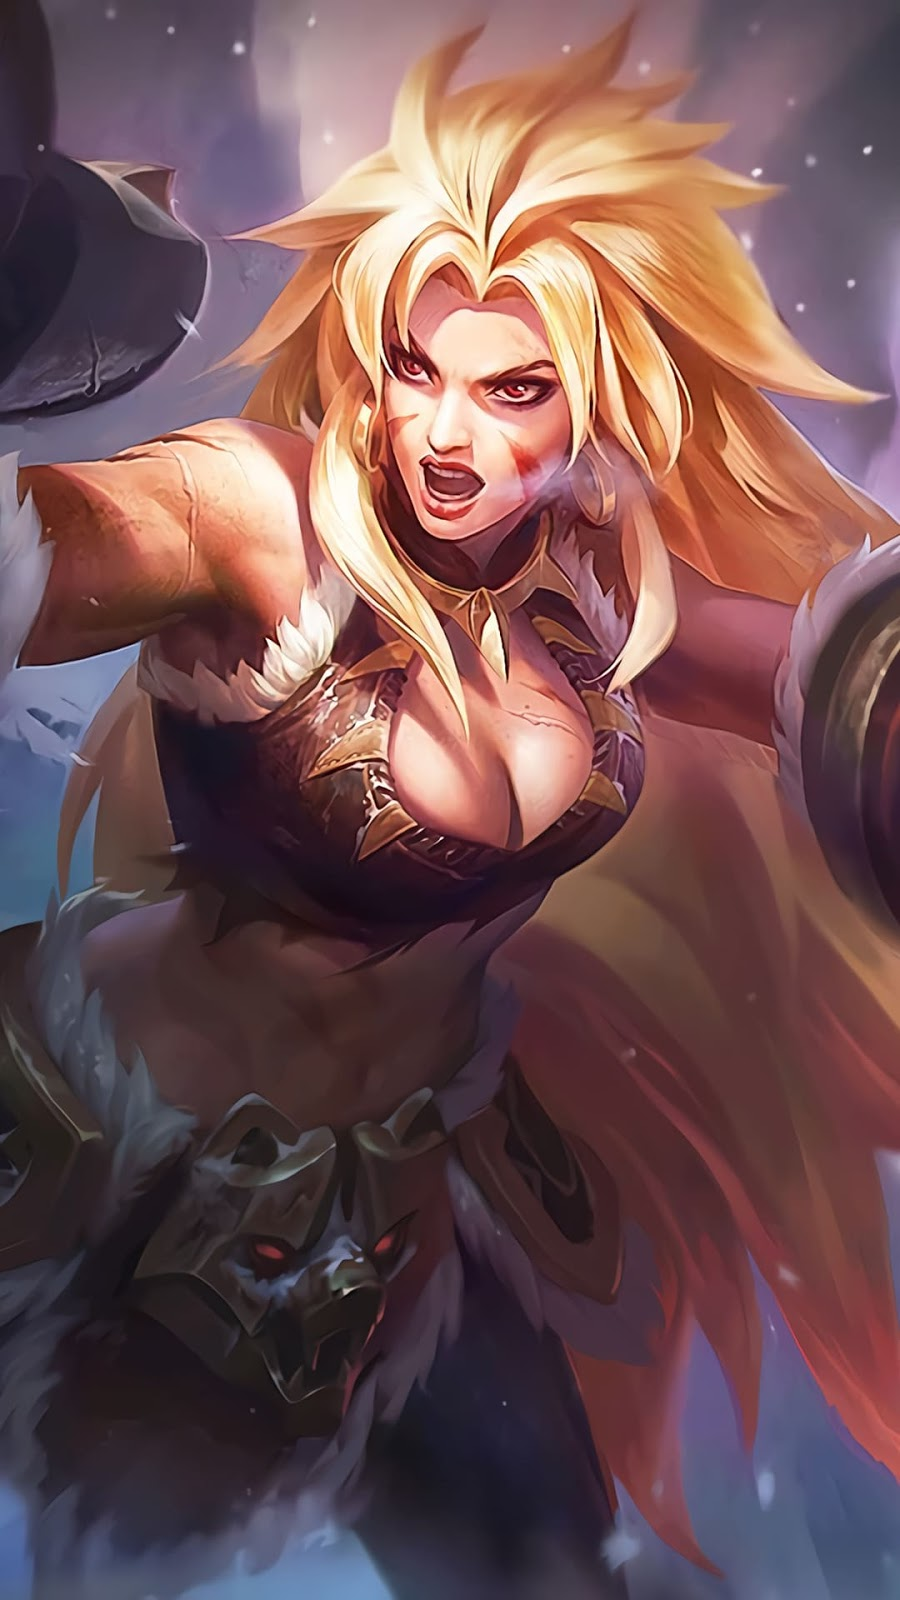 Wallpaper Masha Wild oats Fist Skin Mobile Legends HD for Android and iOS